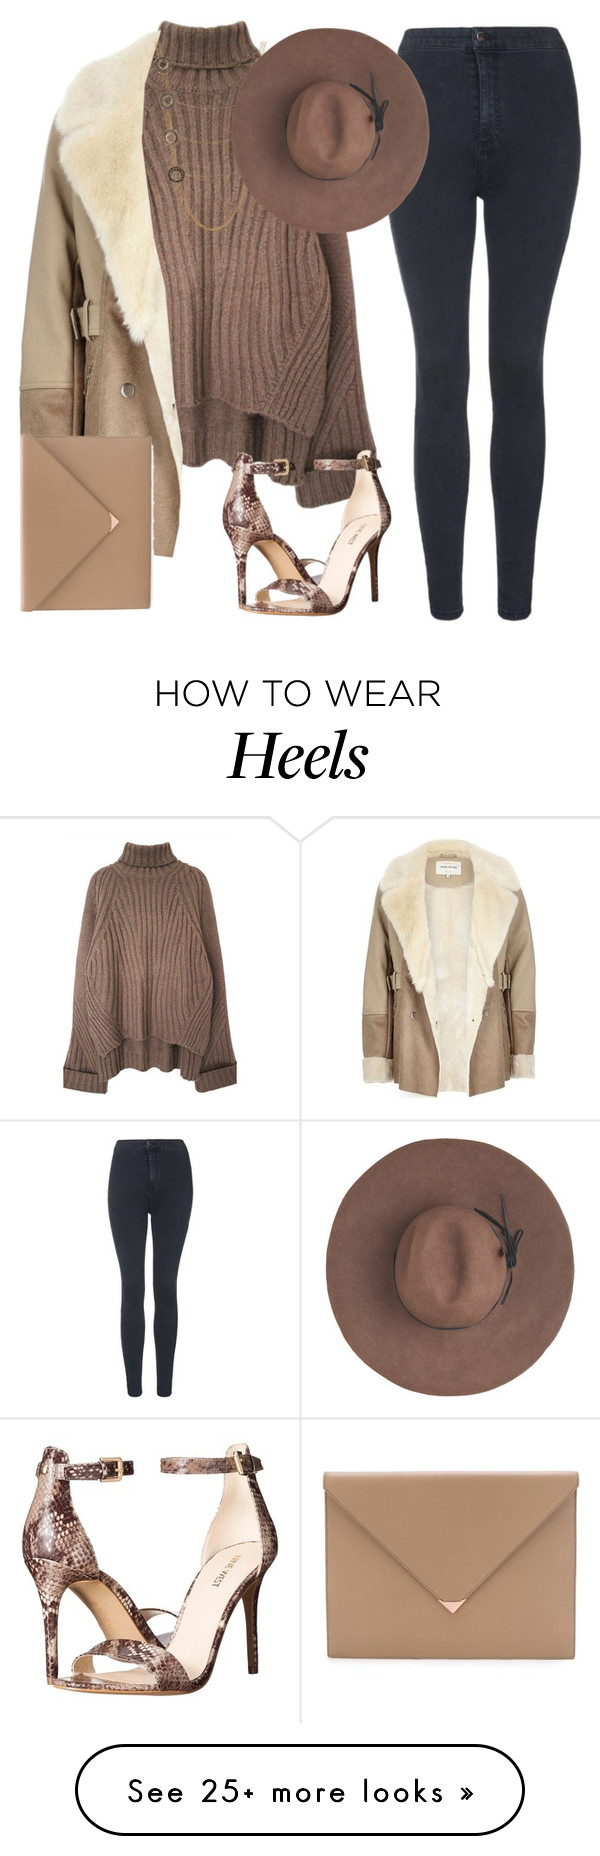 """""""Untitled #1852"""" by lauraafreedom on Polyvore featuring Topshop, River Island, Alexander Wang, Alexander McQueen, Nine West, Eugenia Kim, women's clothing, women, female and woman"""